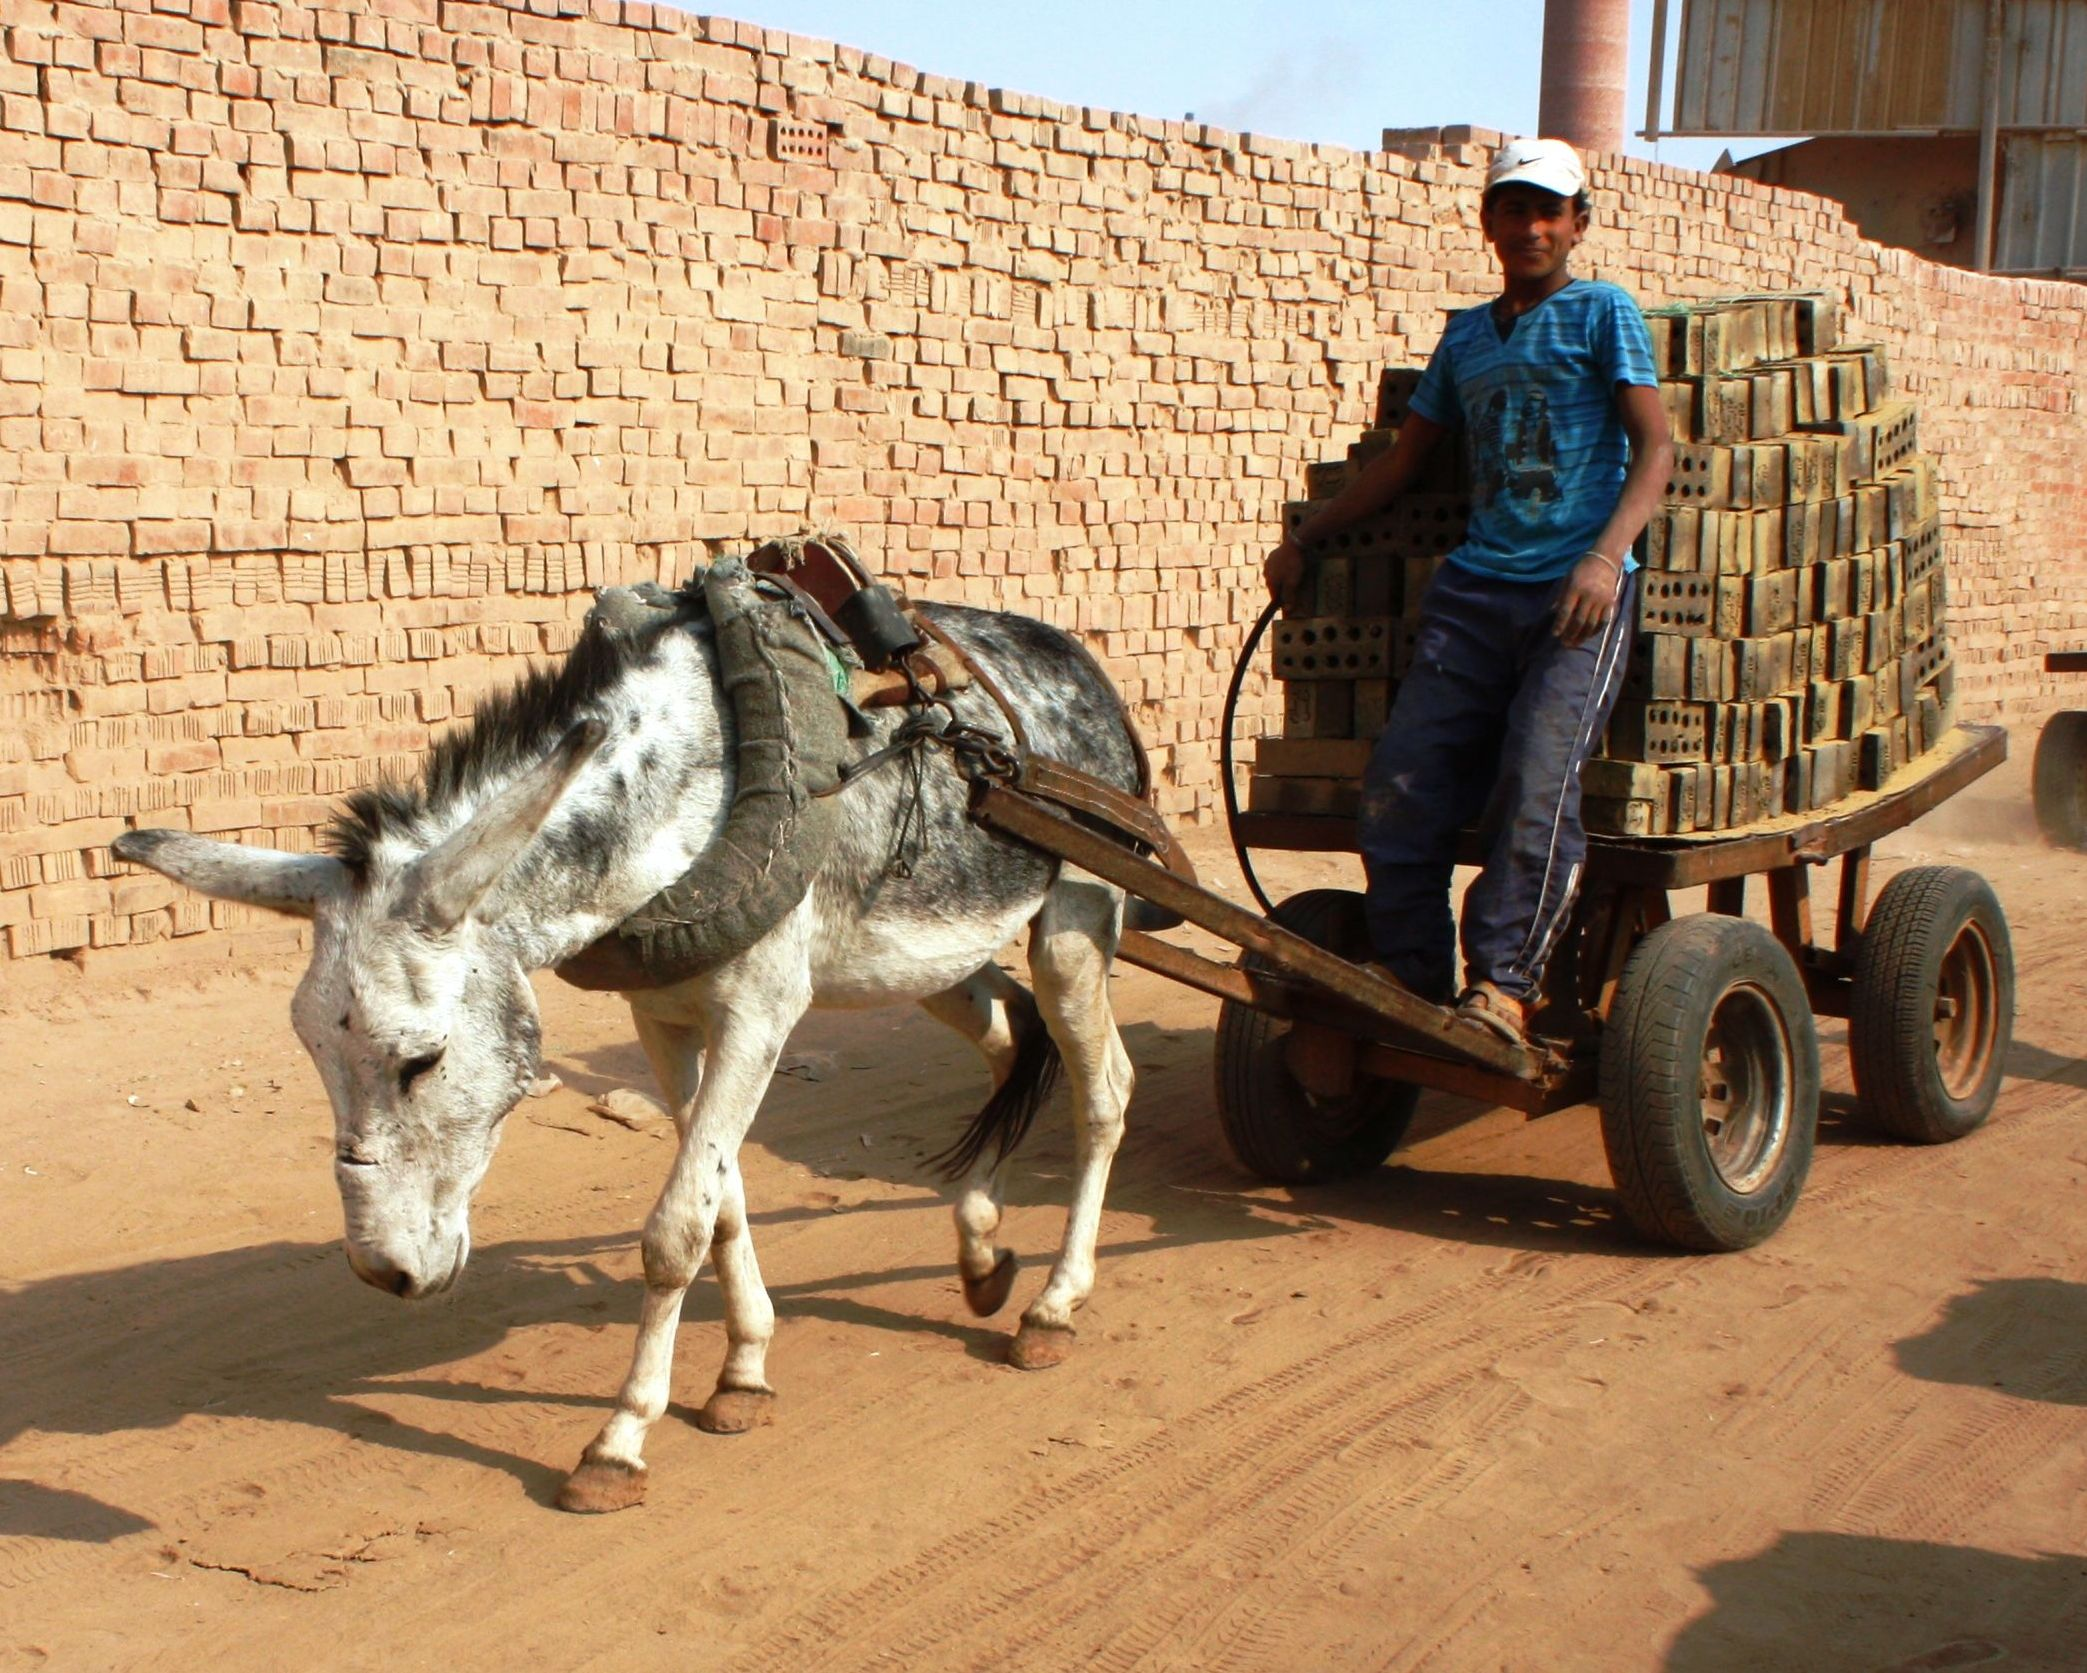 """Because horses, donkeys and mules labor so quietly, steadily, and efficiently, they are almost invisible to the rest of the world. So are their contributions and suffering."""